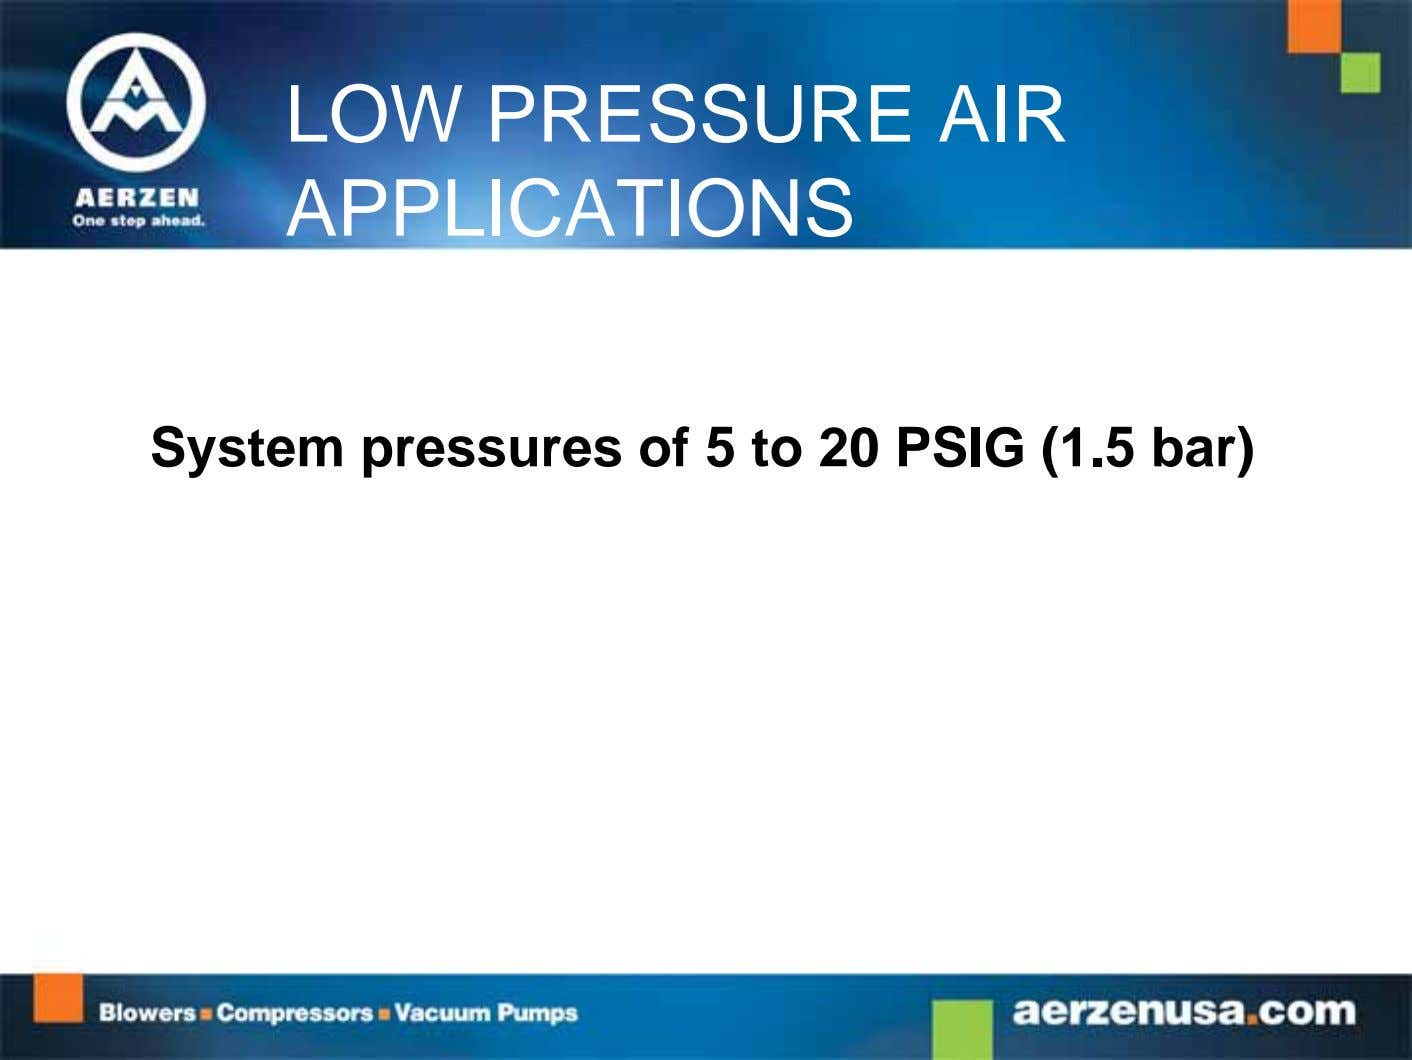 LOW PRESSURE AIR APPLICATIONS System pressures of 5 to 20 PSIG (1.5 bar)